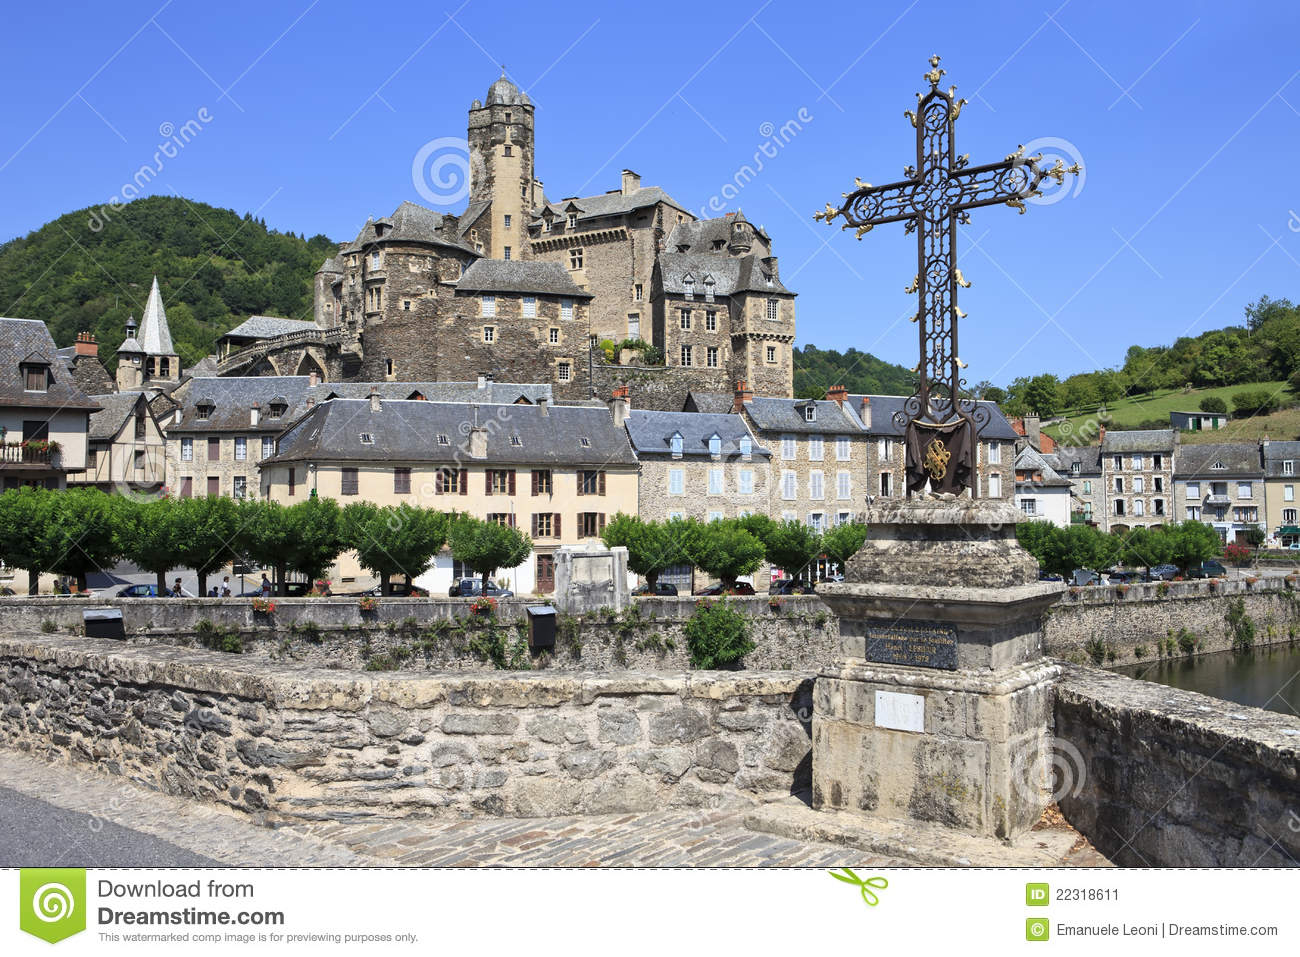 Estaing Village In Southern France Stock Image - Image of